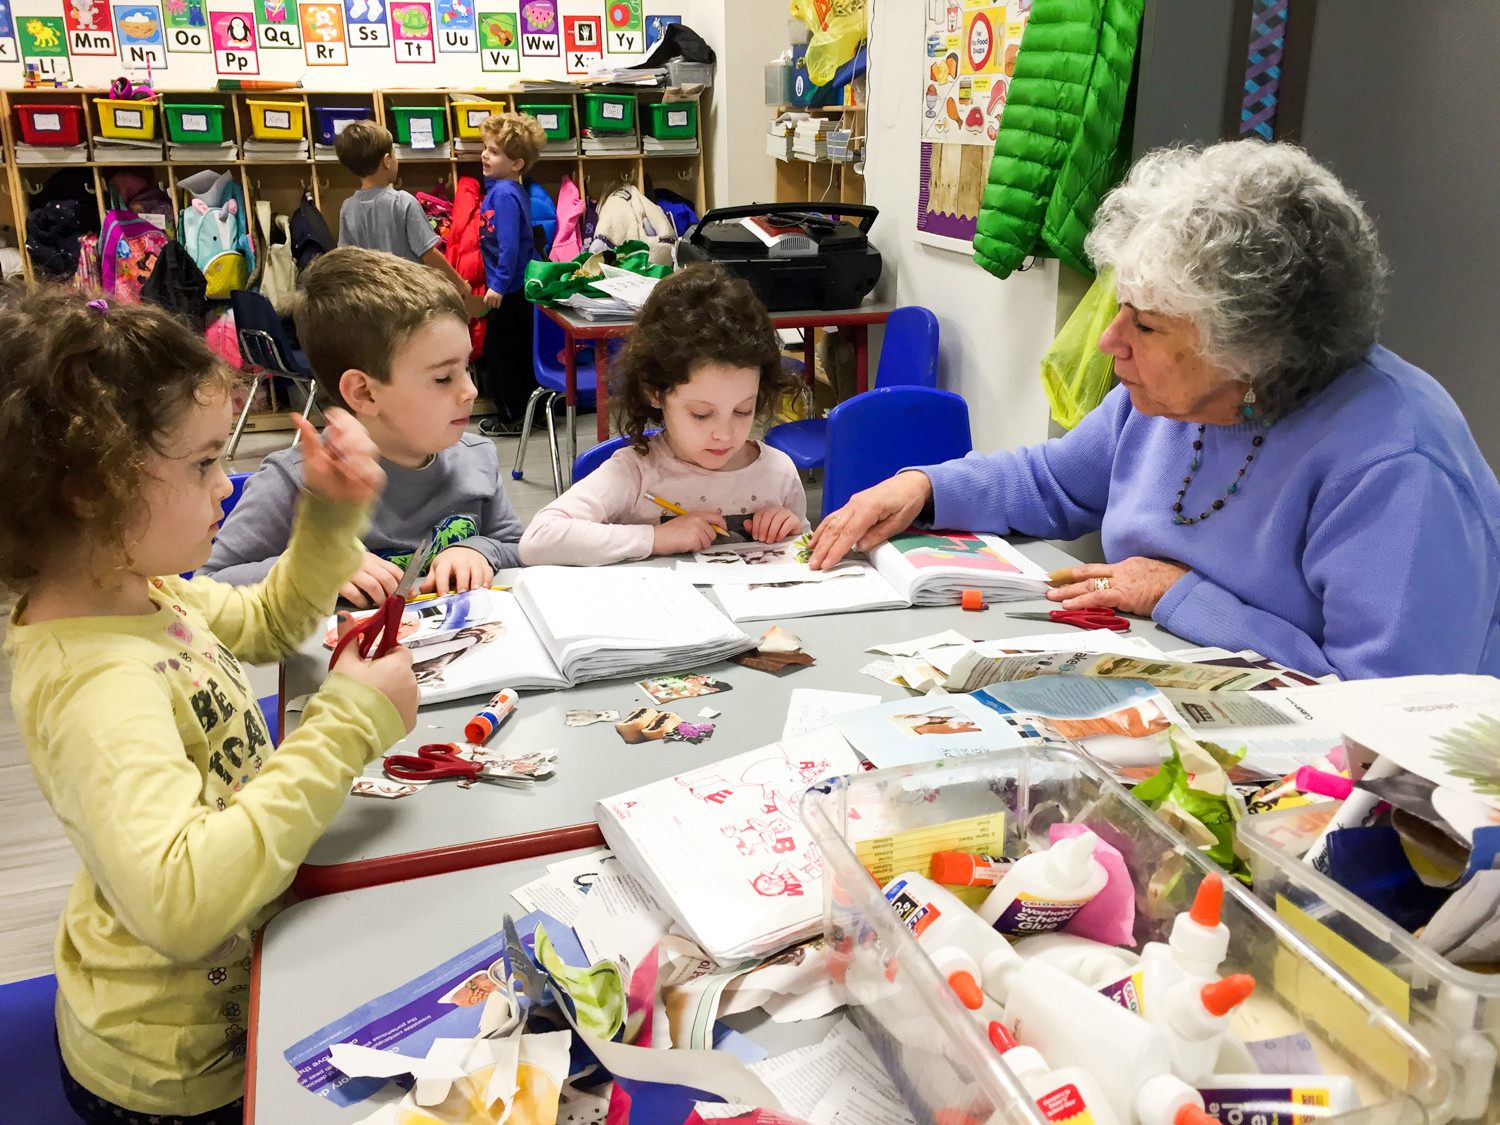 Dorit Niven, a kindergarten teacher at Kinneret Day School, helps her students, Lucy Mandl, left, Yuval Davis and Romy Marinacci, learn about the five senses — sight, smell, taste, touch and sound.